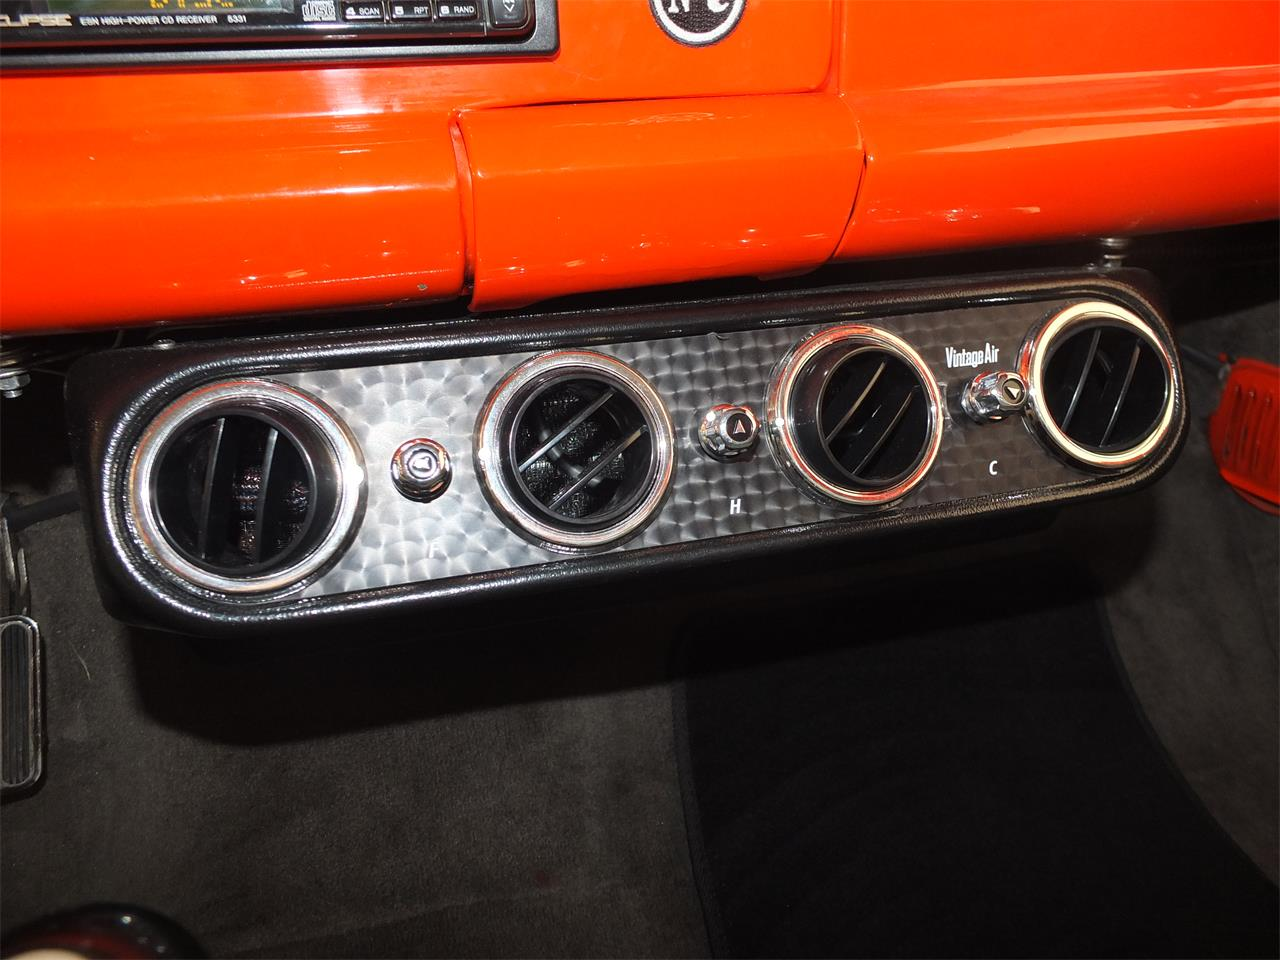 Large Picture of 1960 Ford F100 located in Virginia - $22,980.00 Offered by a Private Seller - M780